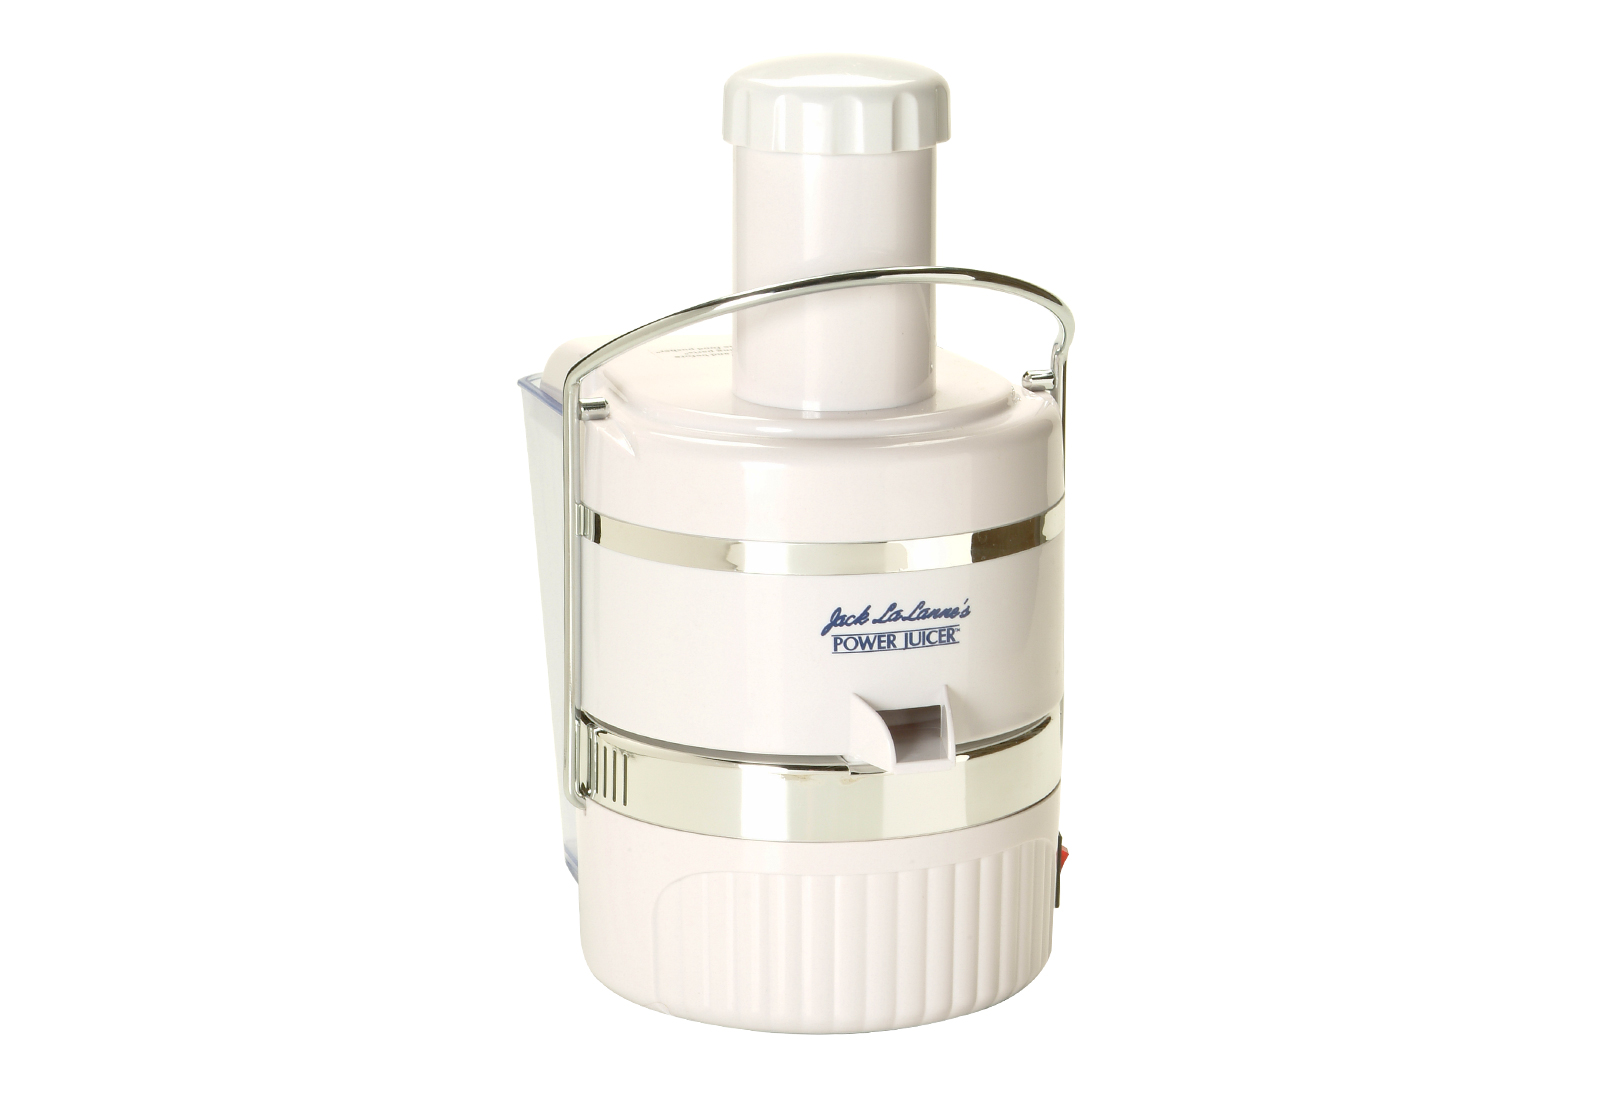 Power Juicer Product Image